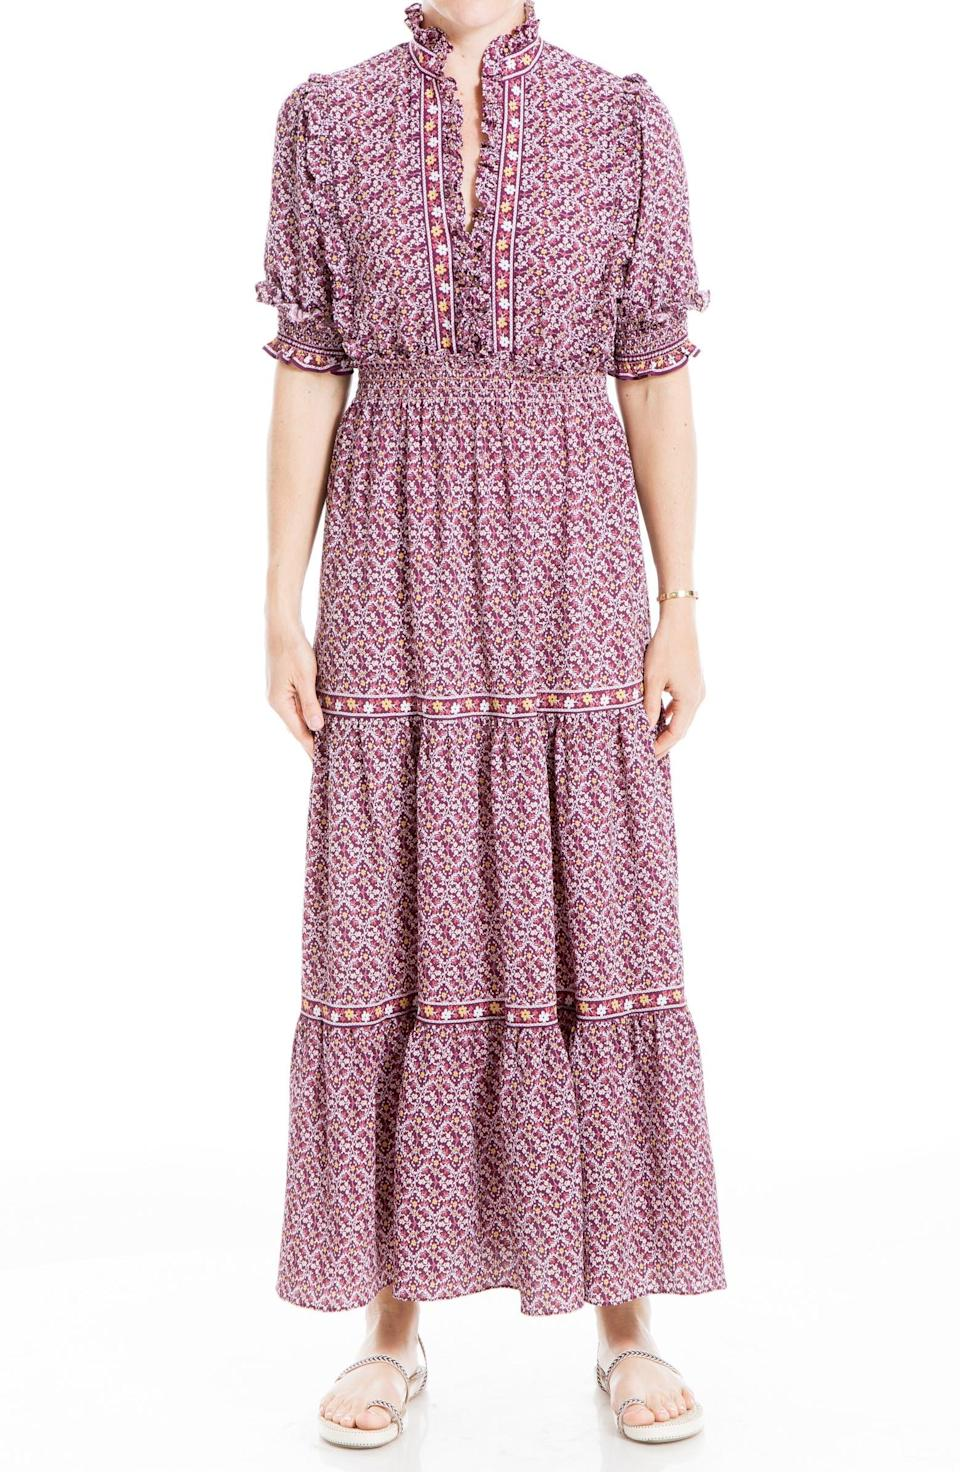 """<h2>Max Studio Tiered Maxi Dress</h2><br>You don't need to be style savant to know that anything of the <a href=""""https://www.refinery29.com/en-us/the-nap-dress-best-styles"""" rel=""""nofollow noopener"""" target=""""_blank"""" data-ylk=""""slk:prairie-chic, nap dress variety"""" class=""""link rapid-noclick-resp"""">prairie-chic, nap dress variety</a> has been all the rage for over a year now (with no sign of slowing down in popularity, BTW). And of course, Nordstrom Rack has a way to get in on the trend at a major discount.<br><br><strong>The Hype:</strong> 4 out of 5 stars; 238 reviews on <a href=""""https://www.nordstromrack.com/s/max-studio-elbow-length-sleeve-print-tiered-maxi-dress/6043768"""" rel=""""nofollow noopener"""" target=""""_blank"""" data-ylk=""""slk:NordstromRack.com"""" class=""""link rapid-noclick-resp"""">NordstromRack.com</a><br><br><strong>What They're Saying:</strong> """"This dress is AWESOME! Would 1,000% recommend! Fit is great and I received a lot of compliments the night i wore it out!"""" — lauren, NordstromRack.com reviewer<br><br><strong>Max Studio</strong> Print Tiered Maxi Dress, $, available at <a href=""""https://go.skimresources.com/?id=30283X879131&url=https%3A%2F%2Fwww.nordstromrack.com%2Fs%2Fmax-studio-elbow-length-sleeve-print-tiered-maxi-dress%2F6043768"""" rel=""""nofollow noopener"""" target=""""_blank"""" data-ylk=""""slk:Nordstrom Rack"""" class=""""link rapid-noclick-resp"""">Nordstrom Rack</a>"""